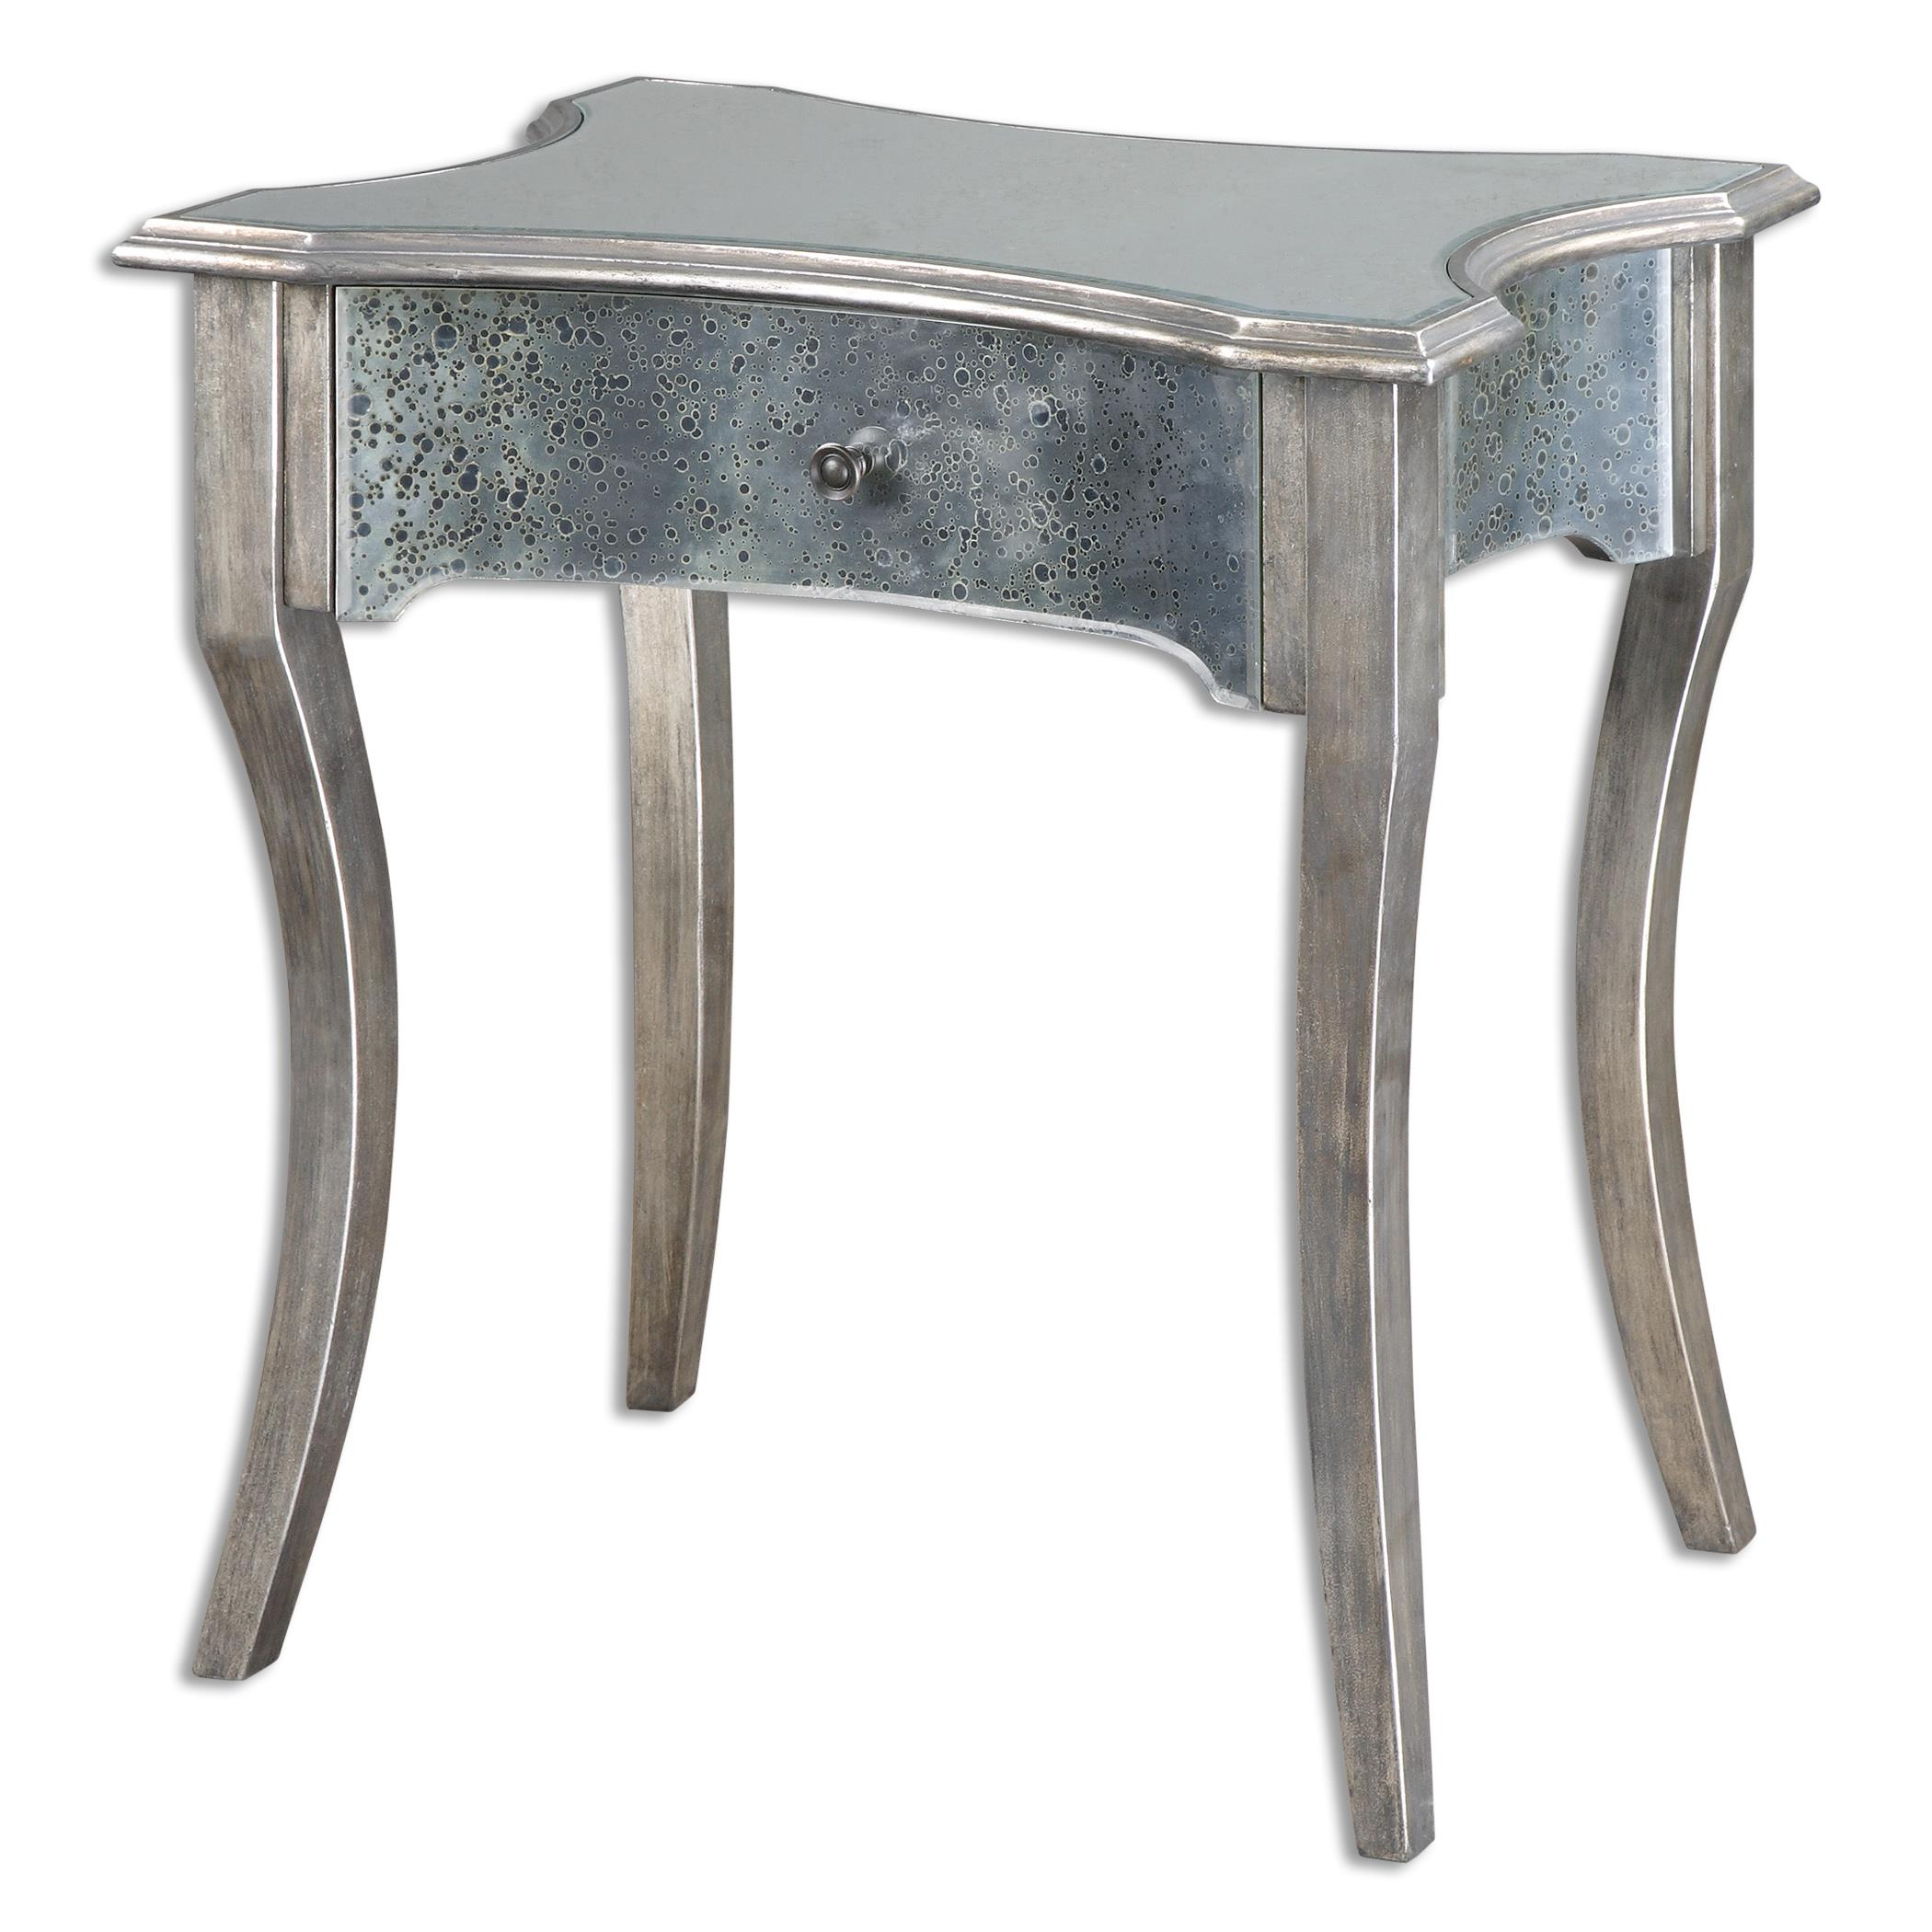 Uttermost Accent Furniture Jovannie Mirrored Accent Table - Item Number: 24508